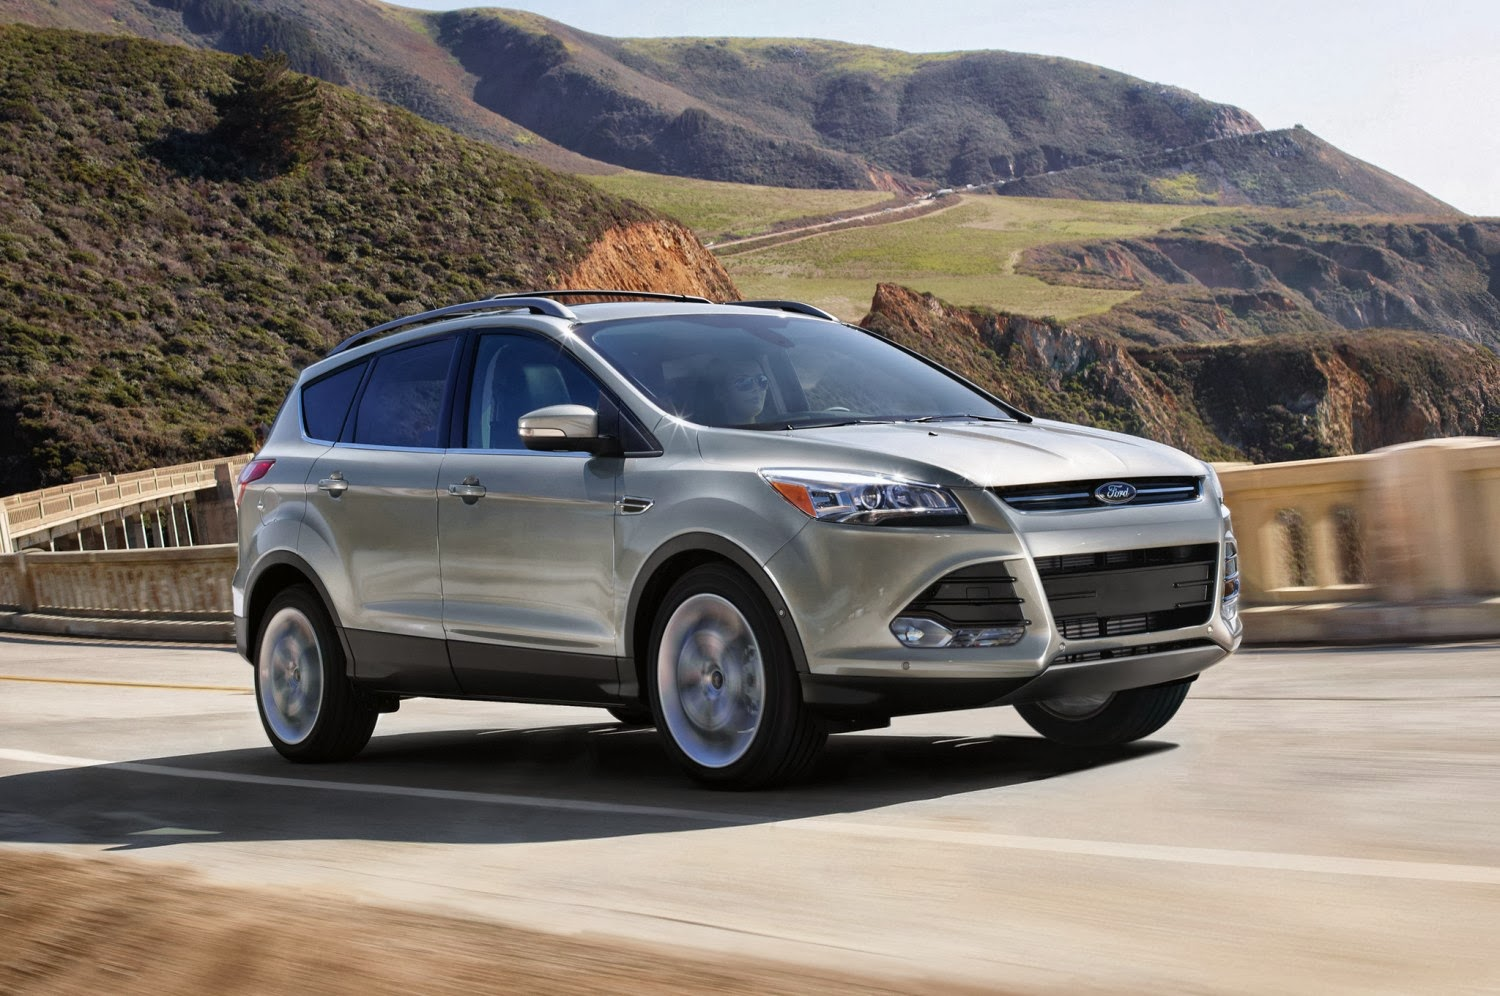 Top Ford Cars for Tailgating